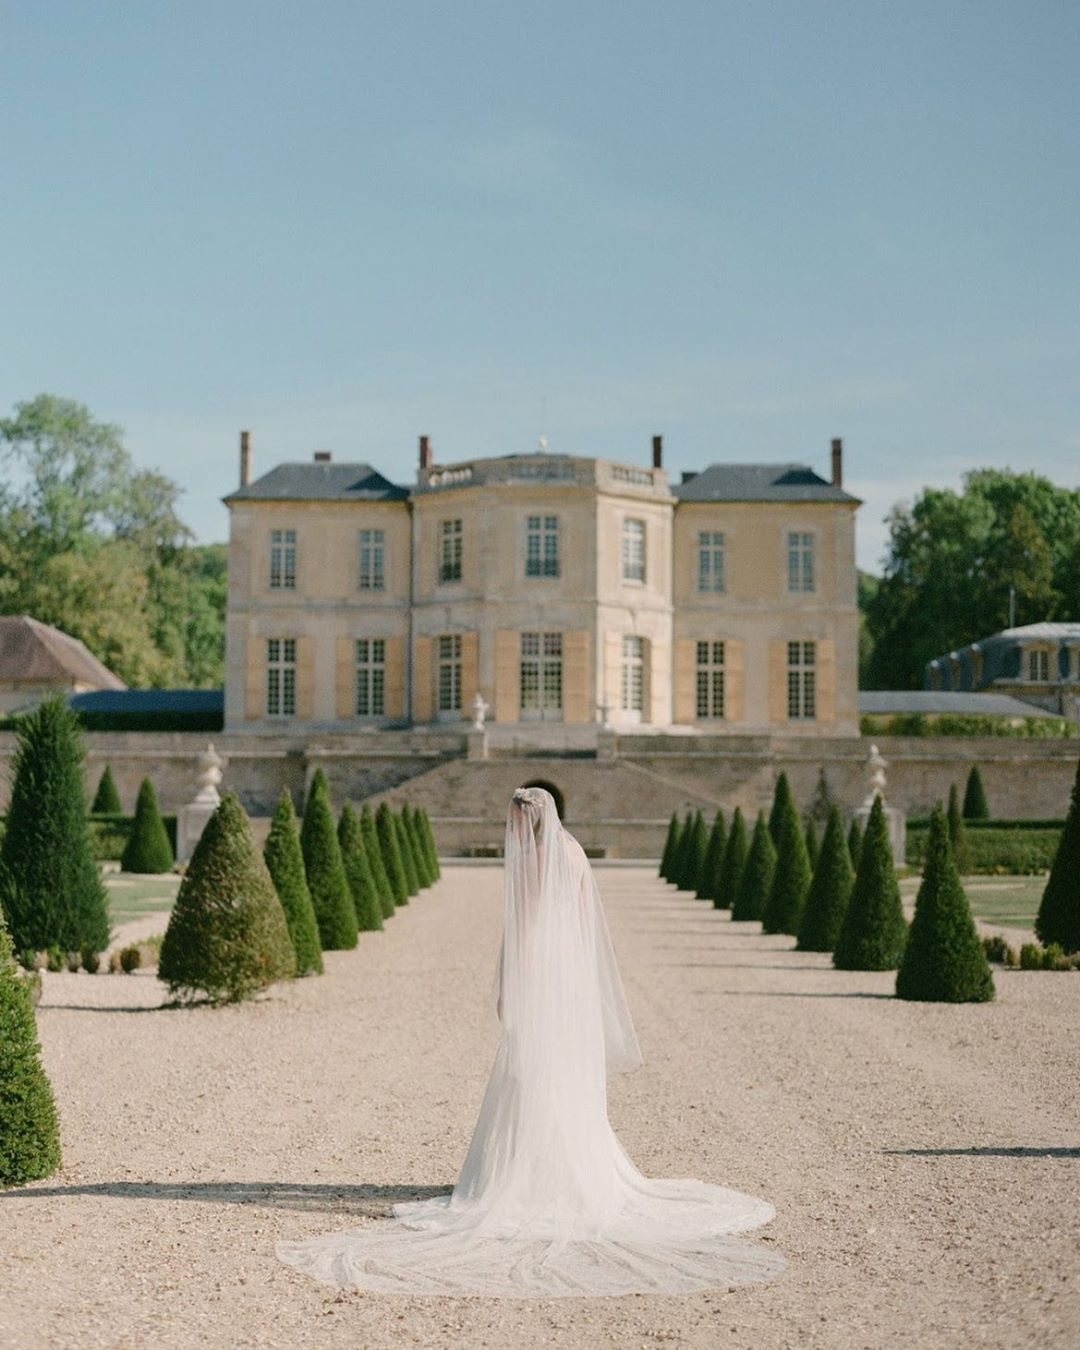 Magnitude, sumptuous, elegant and unique are the French venues.  How do not fall in love with all these beautiful venues in France ?  Lovely Team :  Photographer @jonihobiholiday  Planning @samanthabottelierevents  Wedding gown @tasyatalithaparis Muah @kassaundrastephensmakeup  Model @kira_eva  Shoes @bellabelleshoes  Floral designer @verdefleurs_paris  Wedding Ring @guesclin_joaillier  Accessories @amarnam_accessories  Table ware @canigueralmesasconesencia  Stationery @thevintageinkwell Venue @